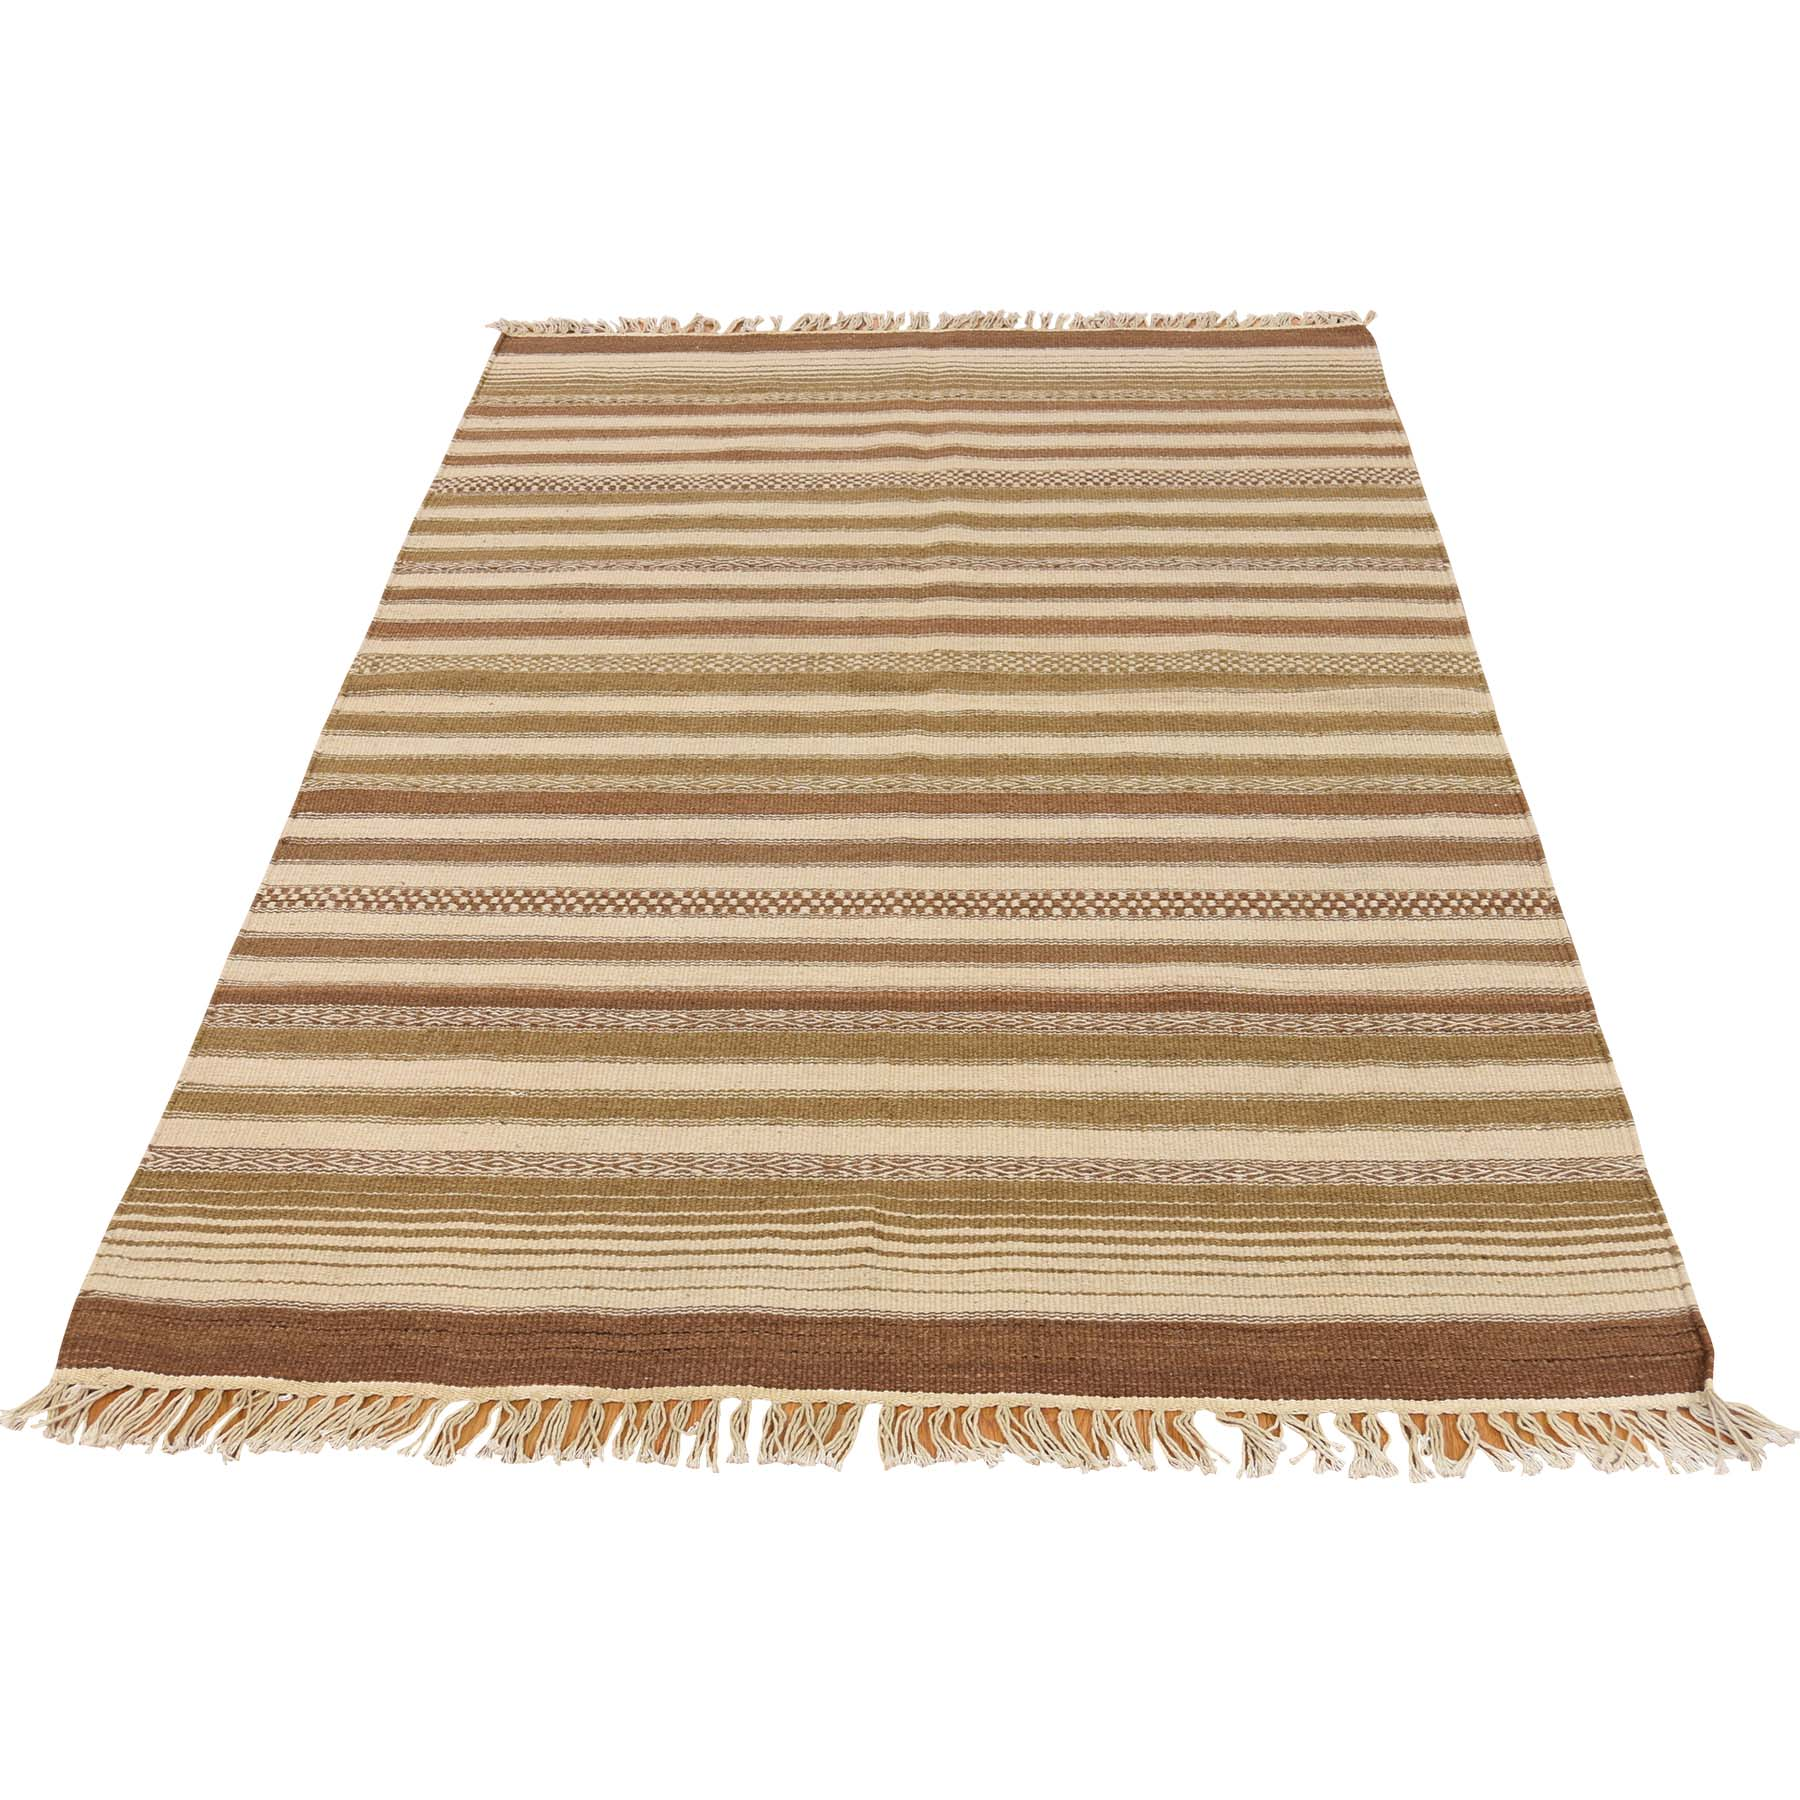 2'10''X4'10'' Striped Durie Kilim Hand Woven Flat Weave Reversible Rug moac79ca